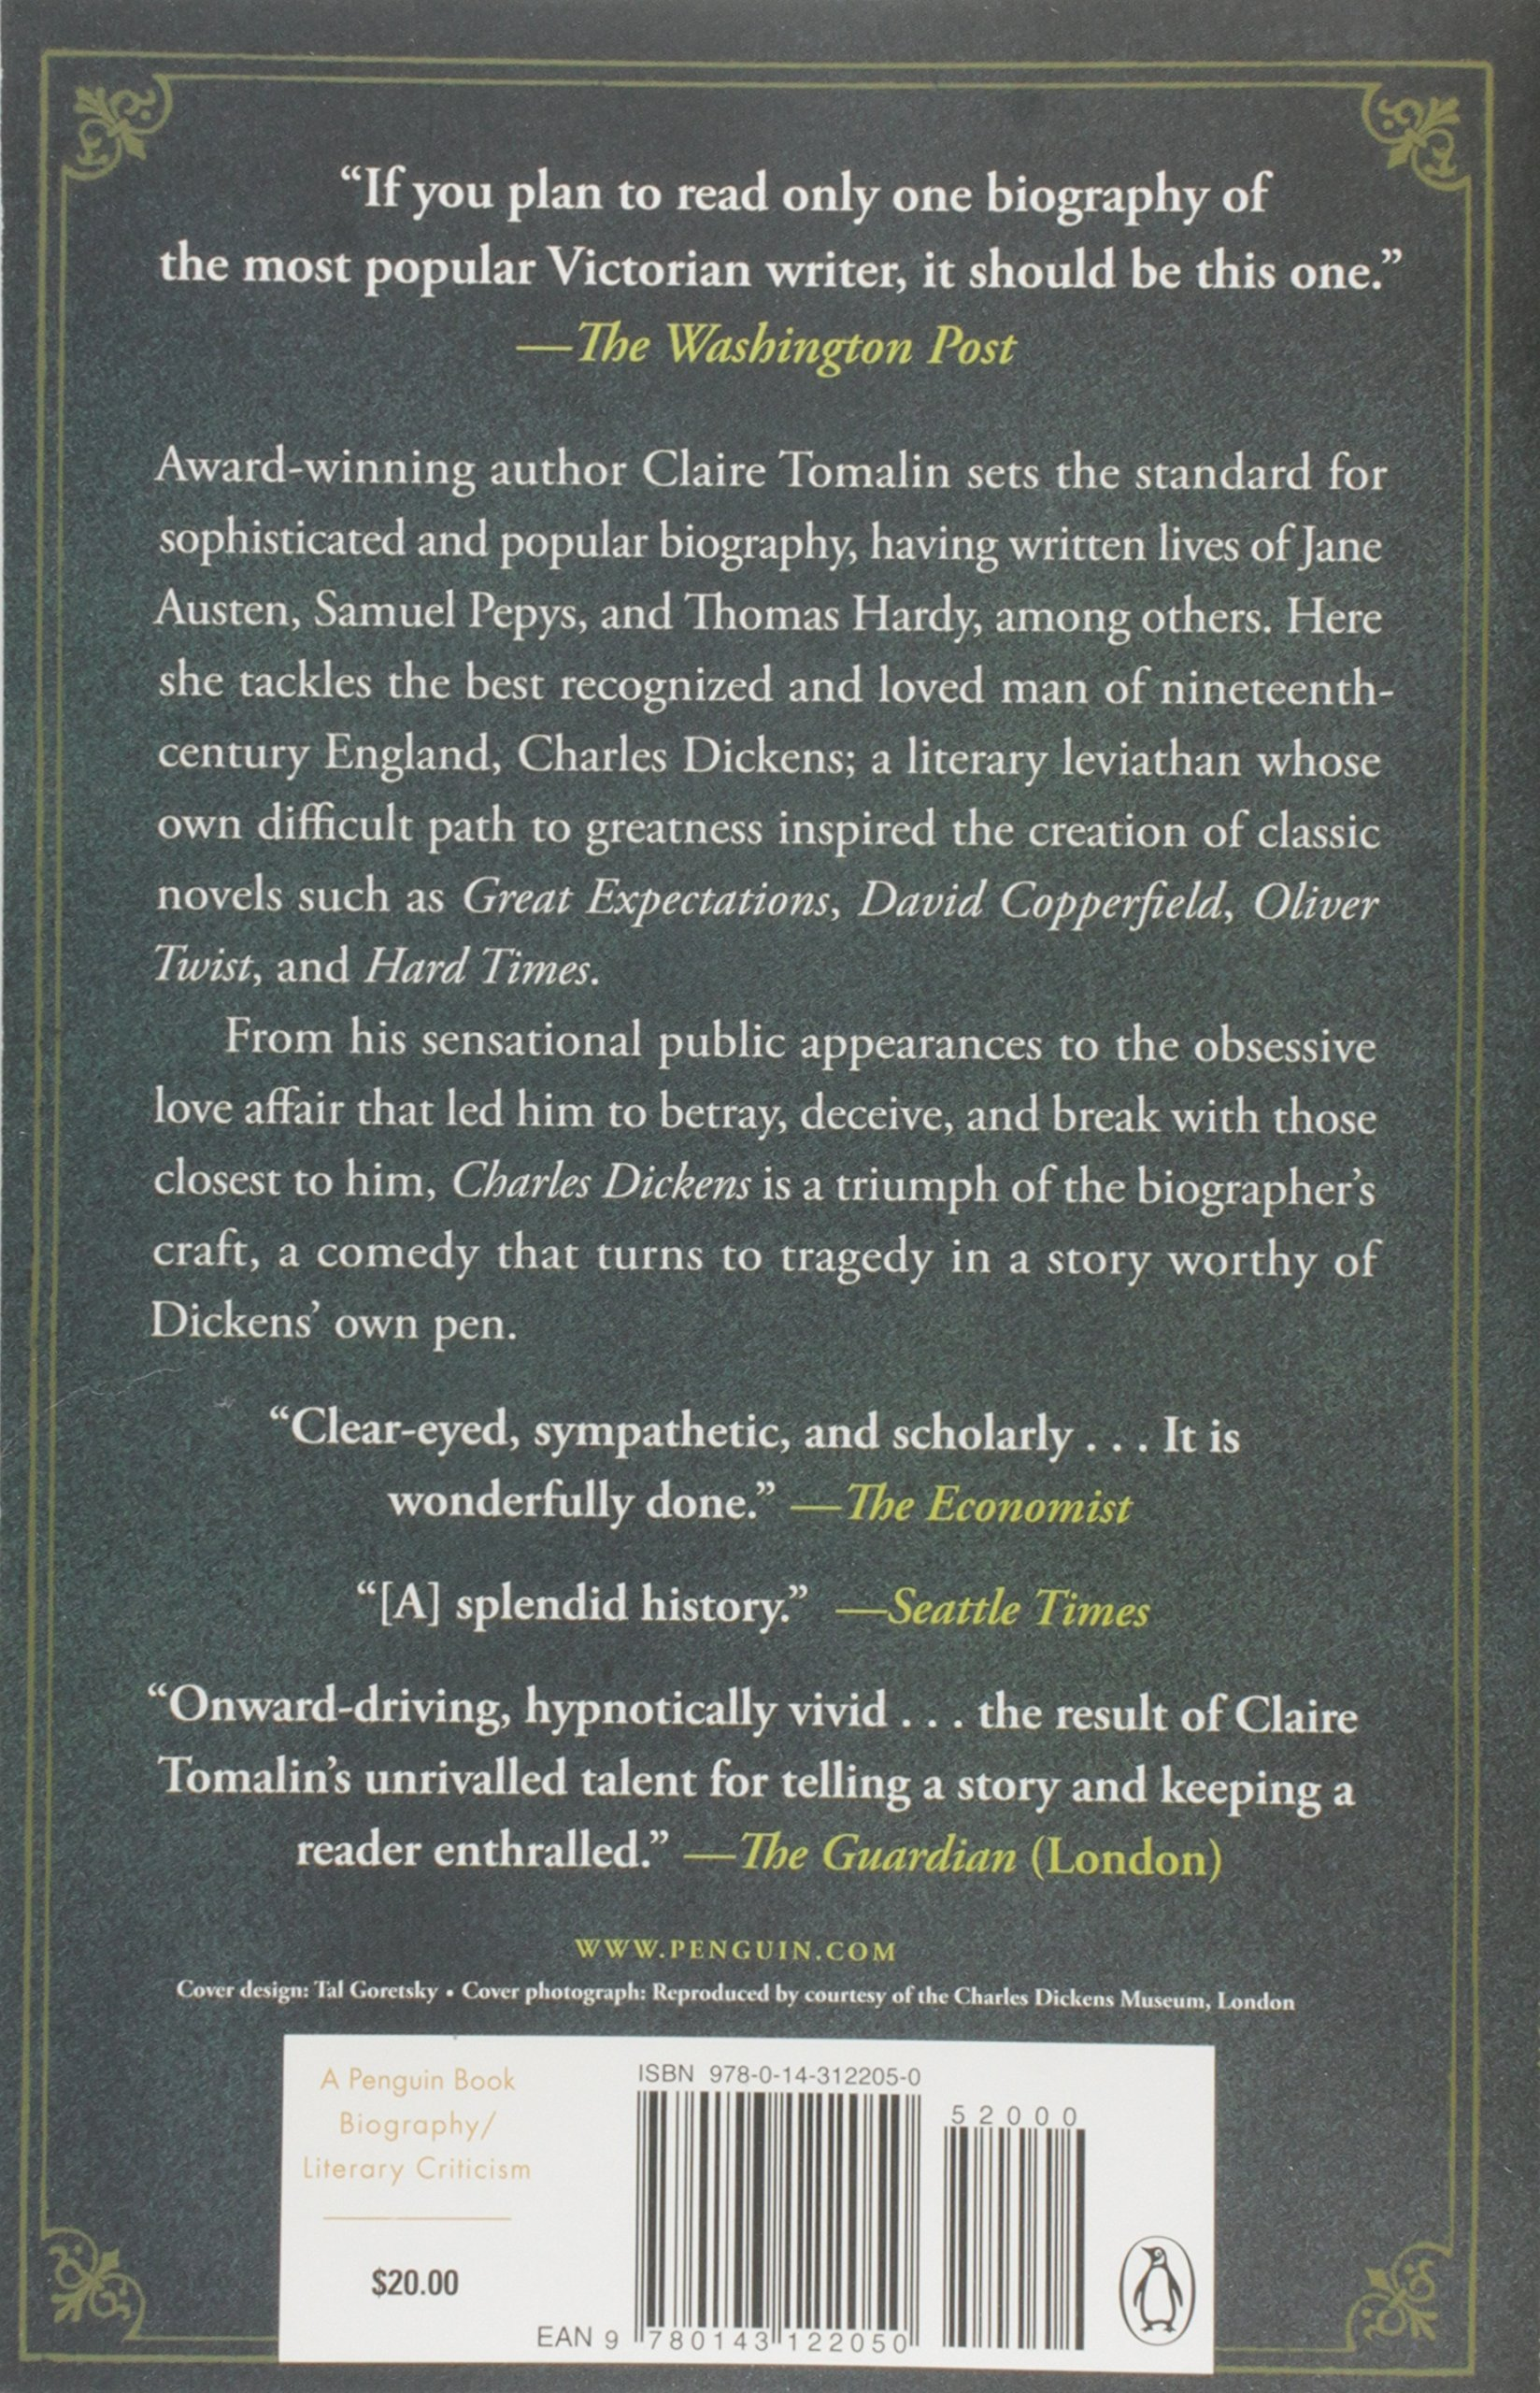 Amazon: Charles Dickens: A Life (9780143122050): Claire Tomalin: Books